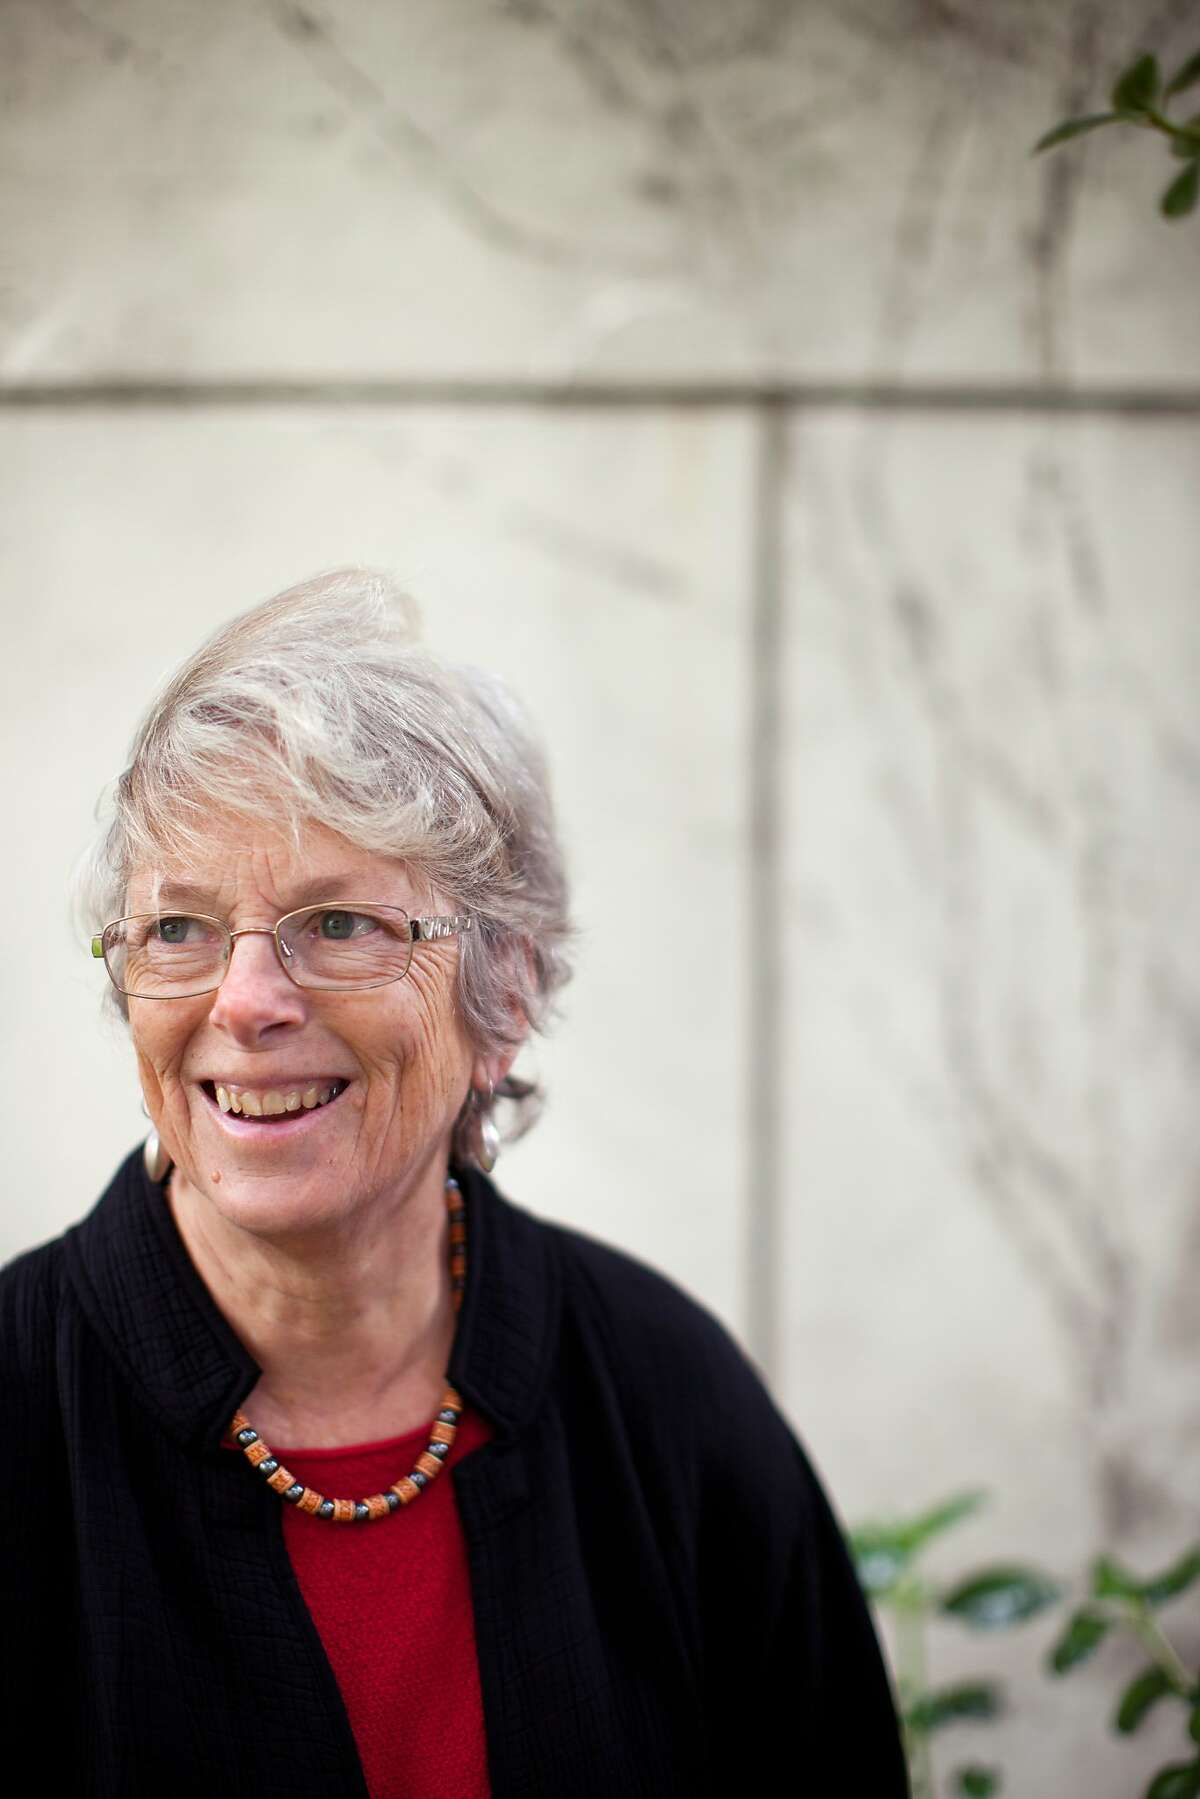 UC Berkeley law professor Pamela Samuelson is a founding member of the Authors Alliance, a new nonprofit advocacy group for authors pushing for copyright reform and better public access to published works. She is photographed outside her apartment in San Francisco on Friday, May 23. 2014.